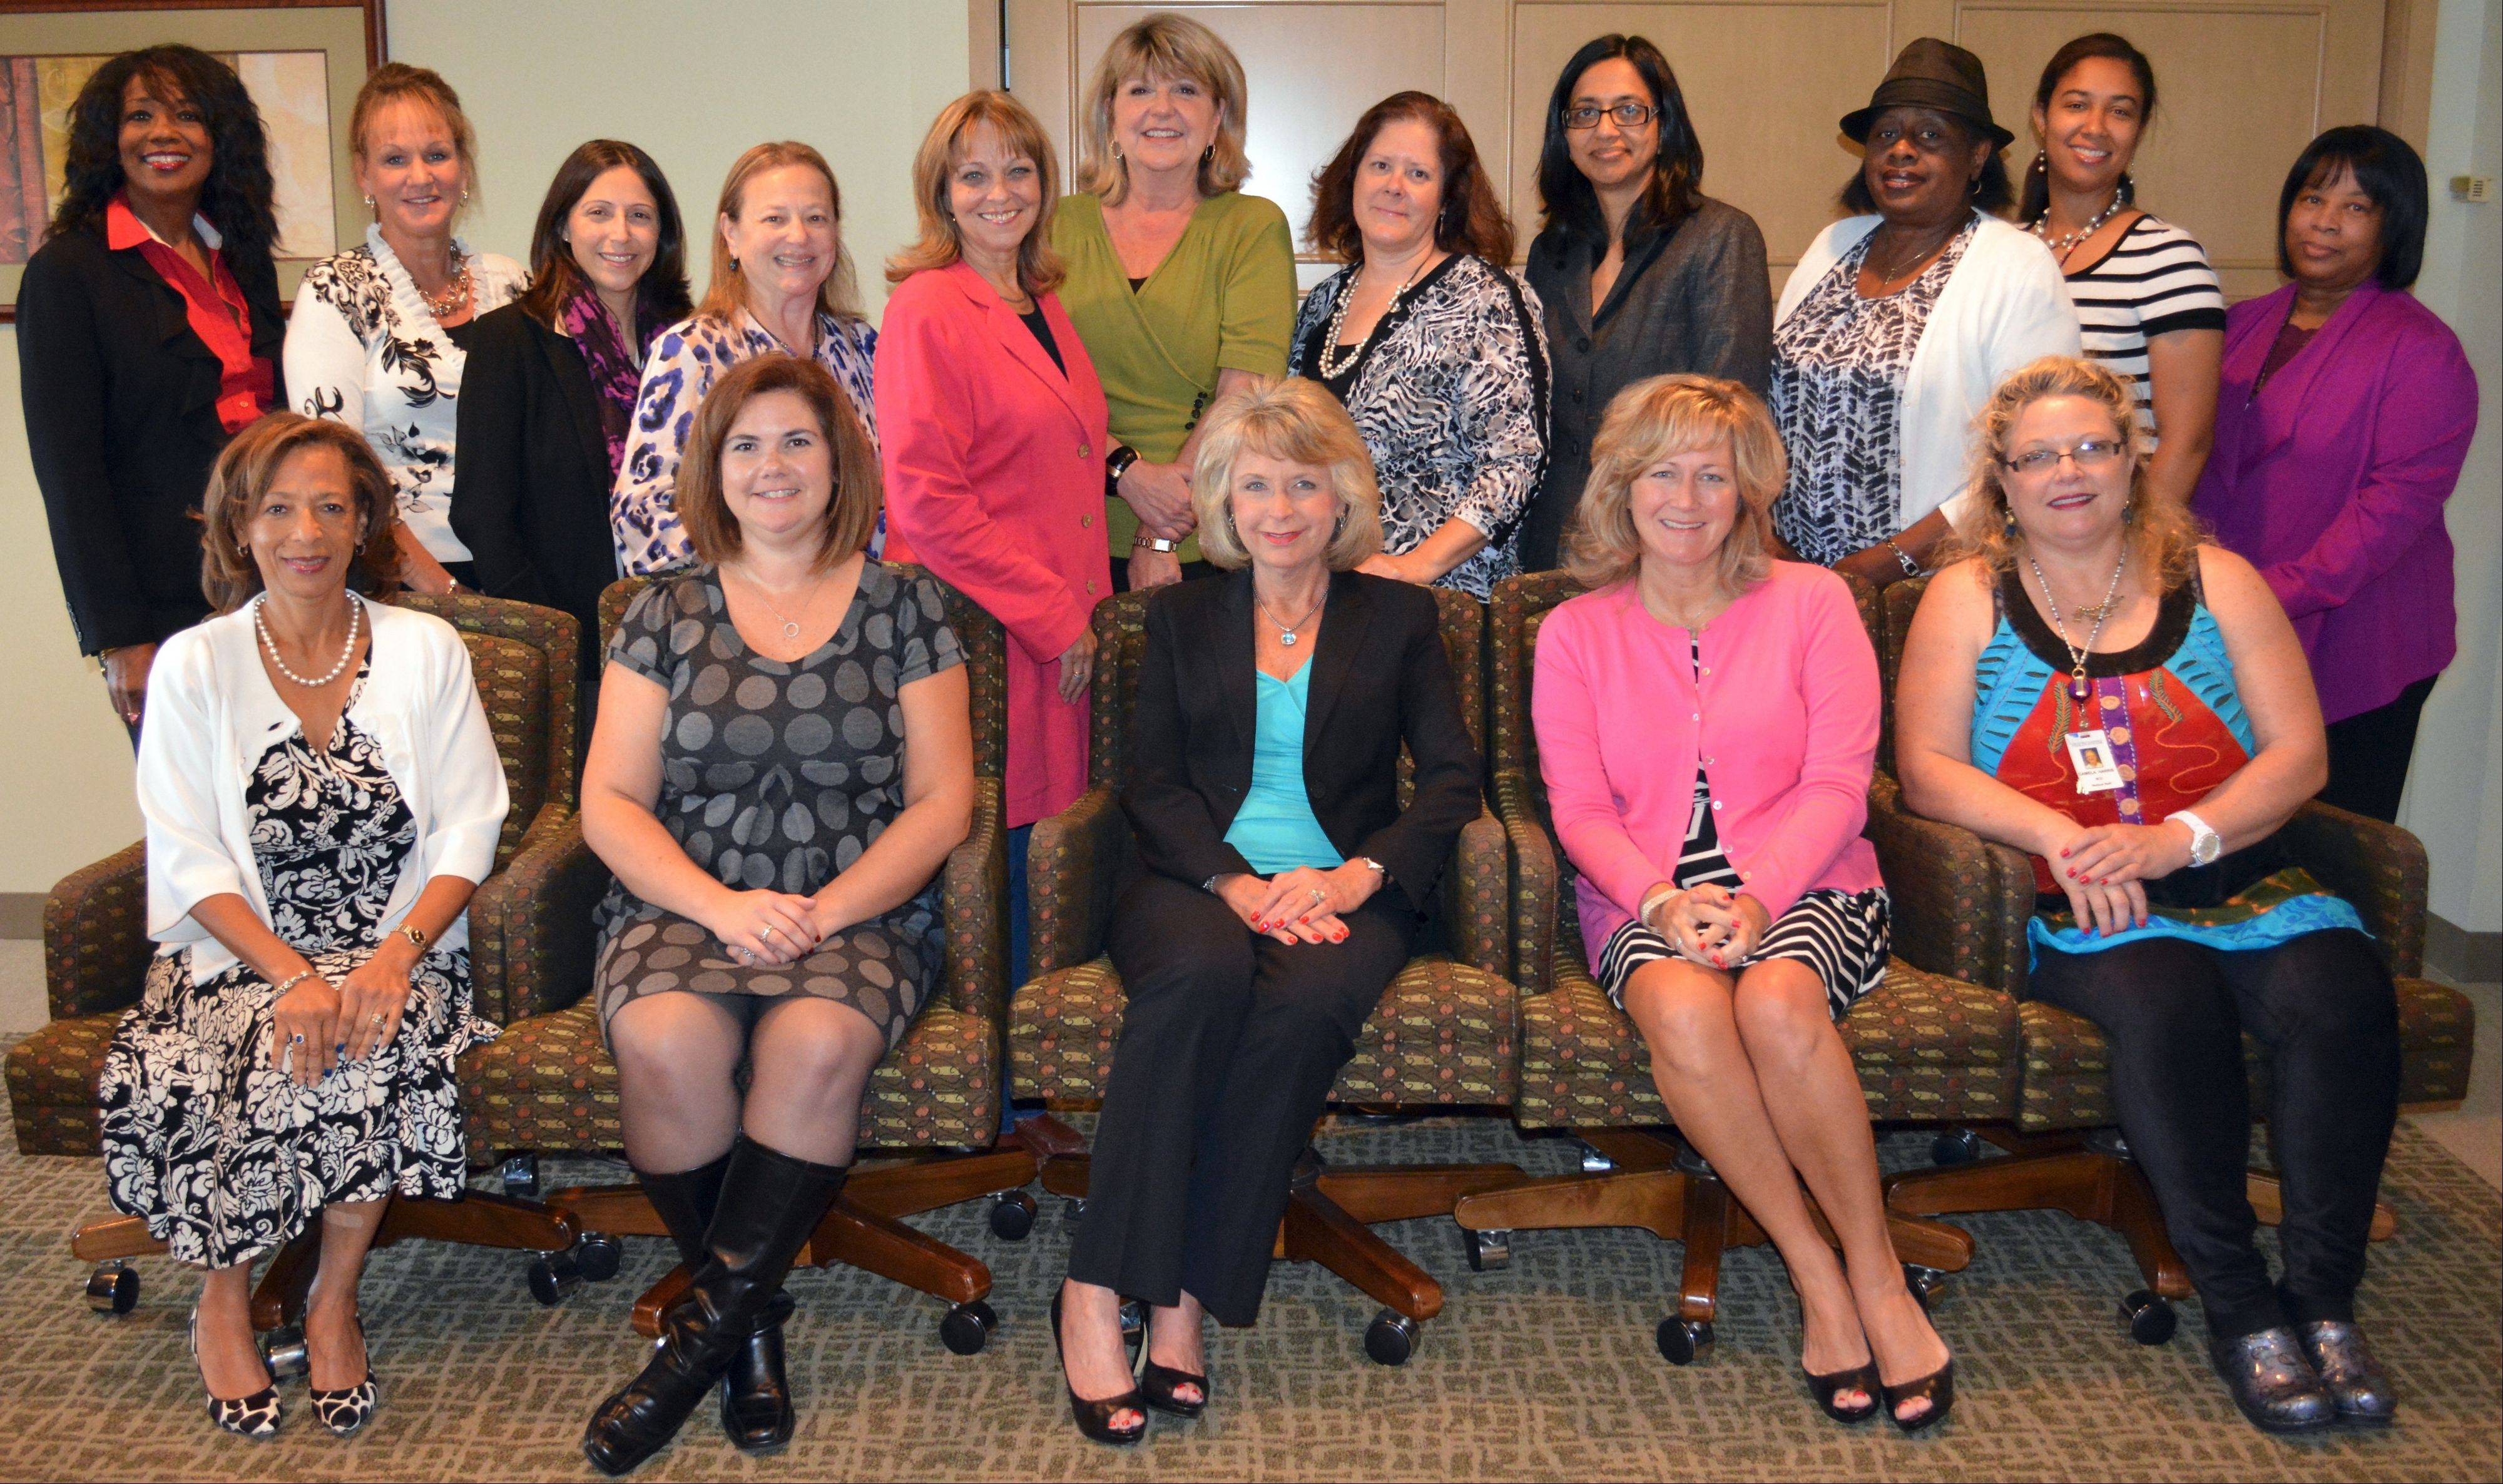 Healthy Woman Advisory Council, from left, back: Patricia Jones, Jeanne Merlo, Myra Gaytan-Morales, Deborah Goldberg, Beth Ragsdale, Connie Meadie, Sandy Marquardt, Dr. Geetha Reddy, Mary Ross-Cunningham, Dr. Christina Conolly-Wilson and Beverly Harvey. Front: Dr. Deborah Smart, Brenda Montes, Barbara Martin, Colleen Zawaski and Dr. Camela Harris.